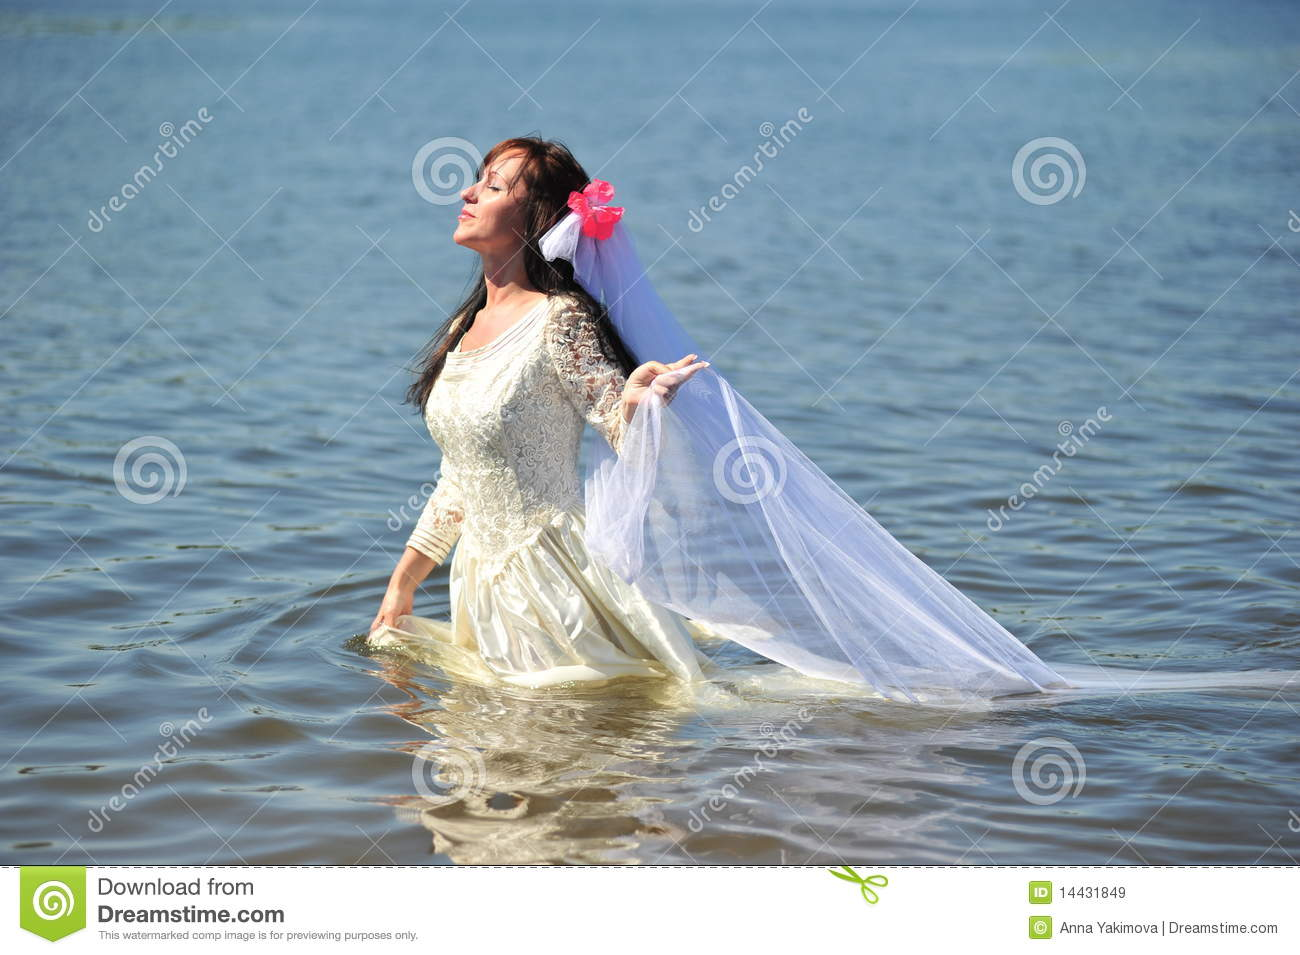 The Girl In A Wedding Dress In Water Stock Image - Image of married ...